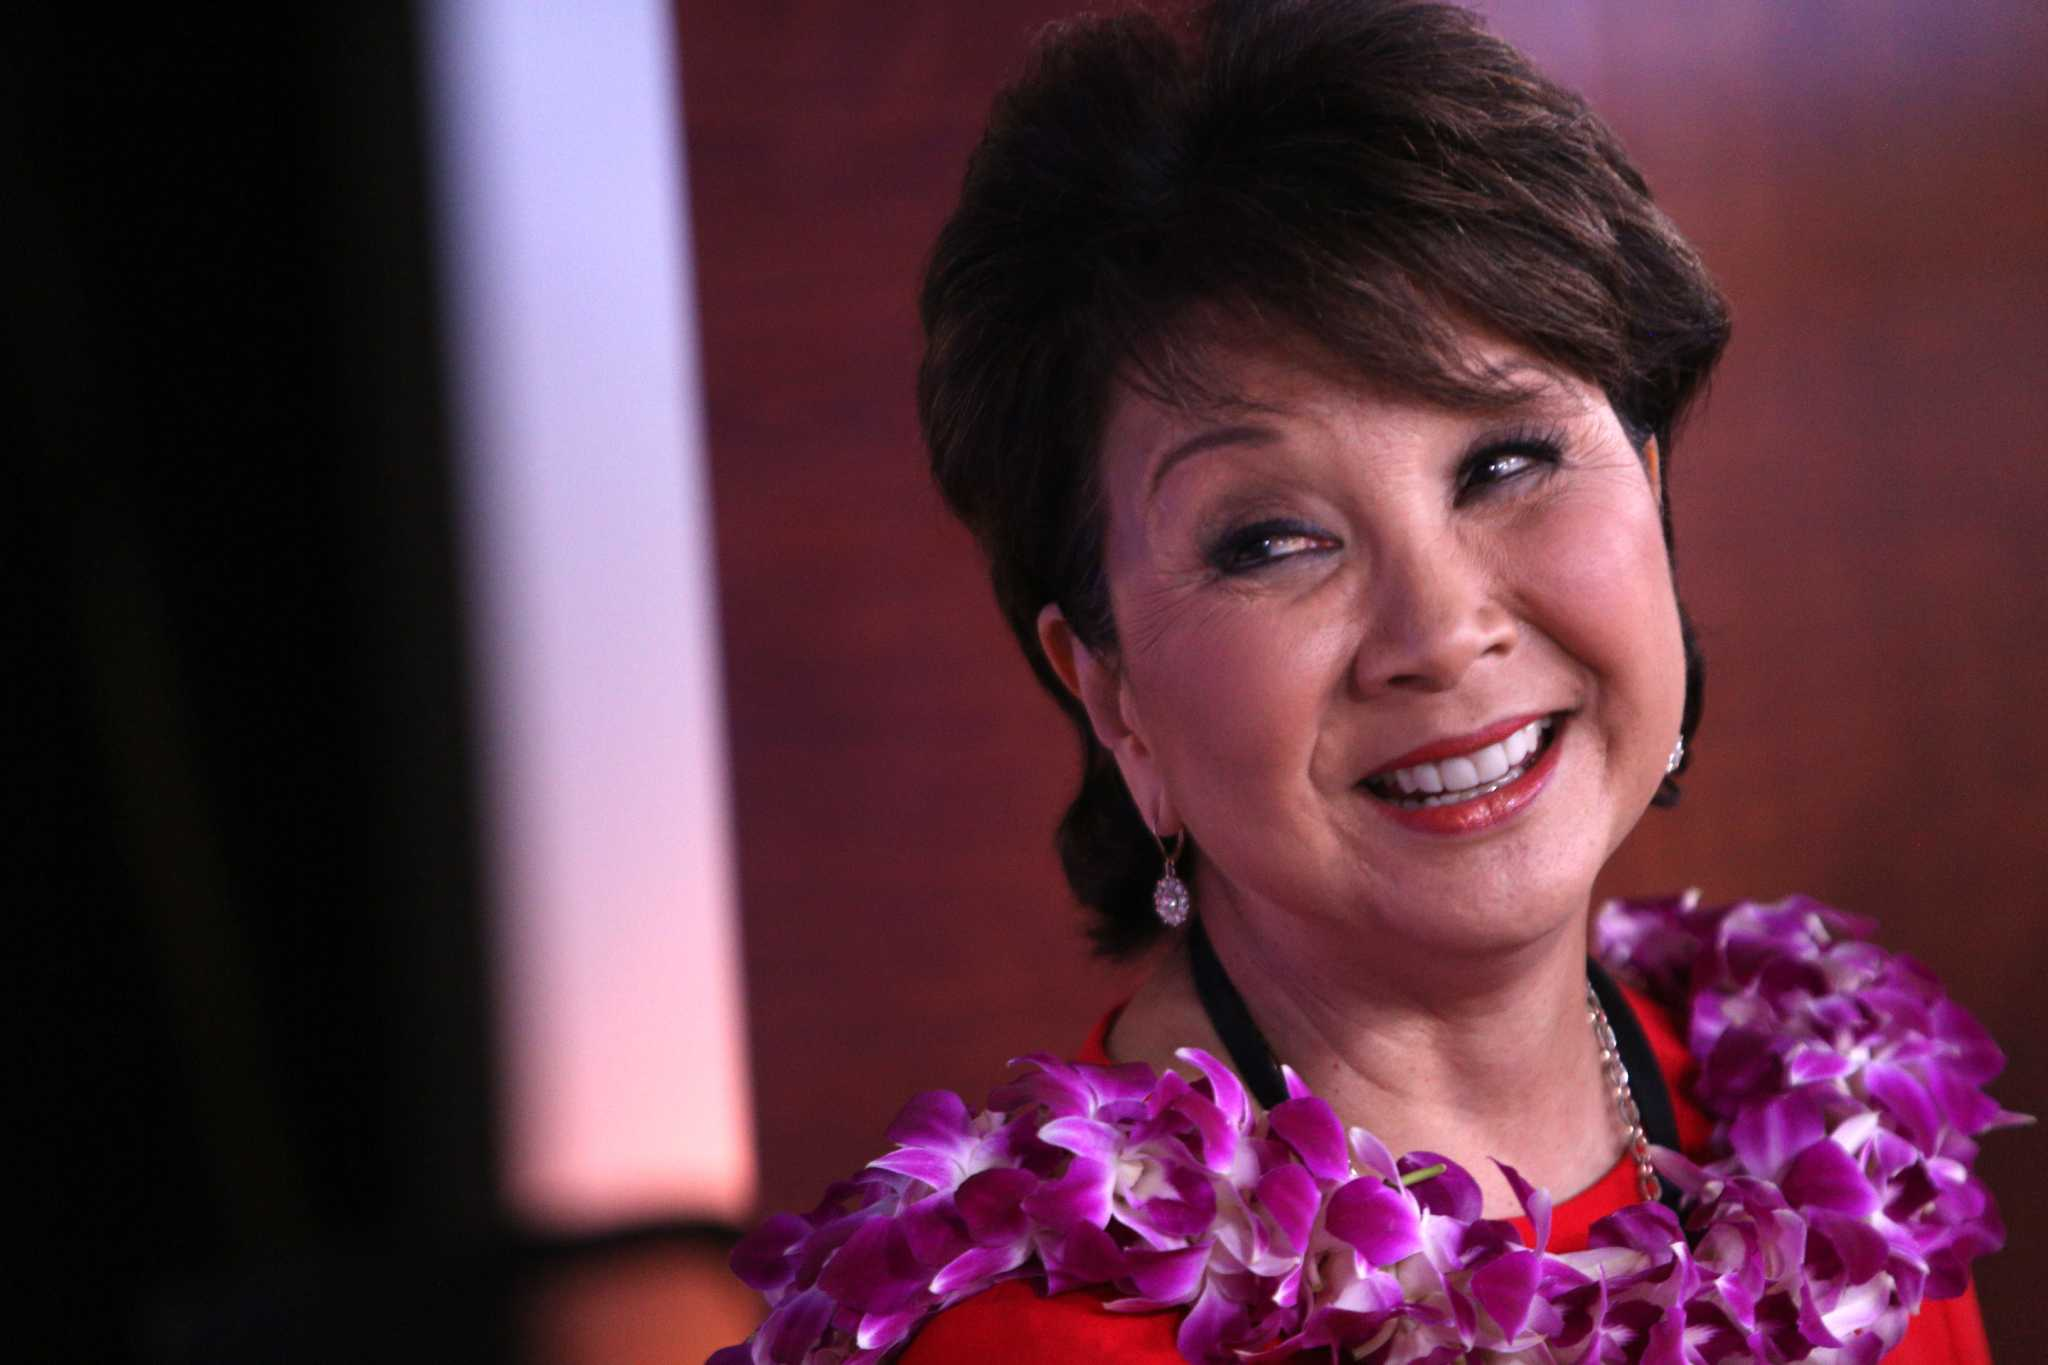 'For over 36 years, I was blessed': Lori Matsukawa anchors her final broadcast for KING-TV